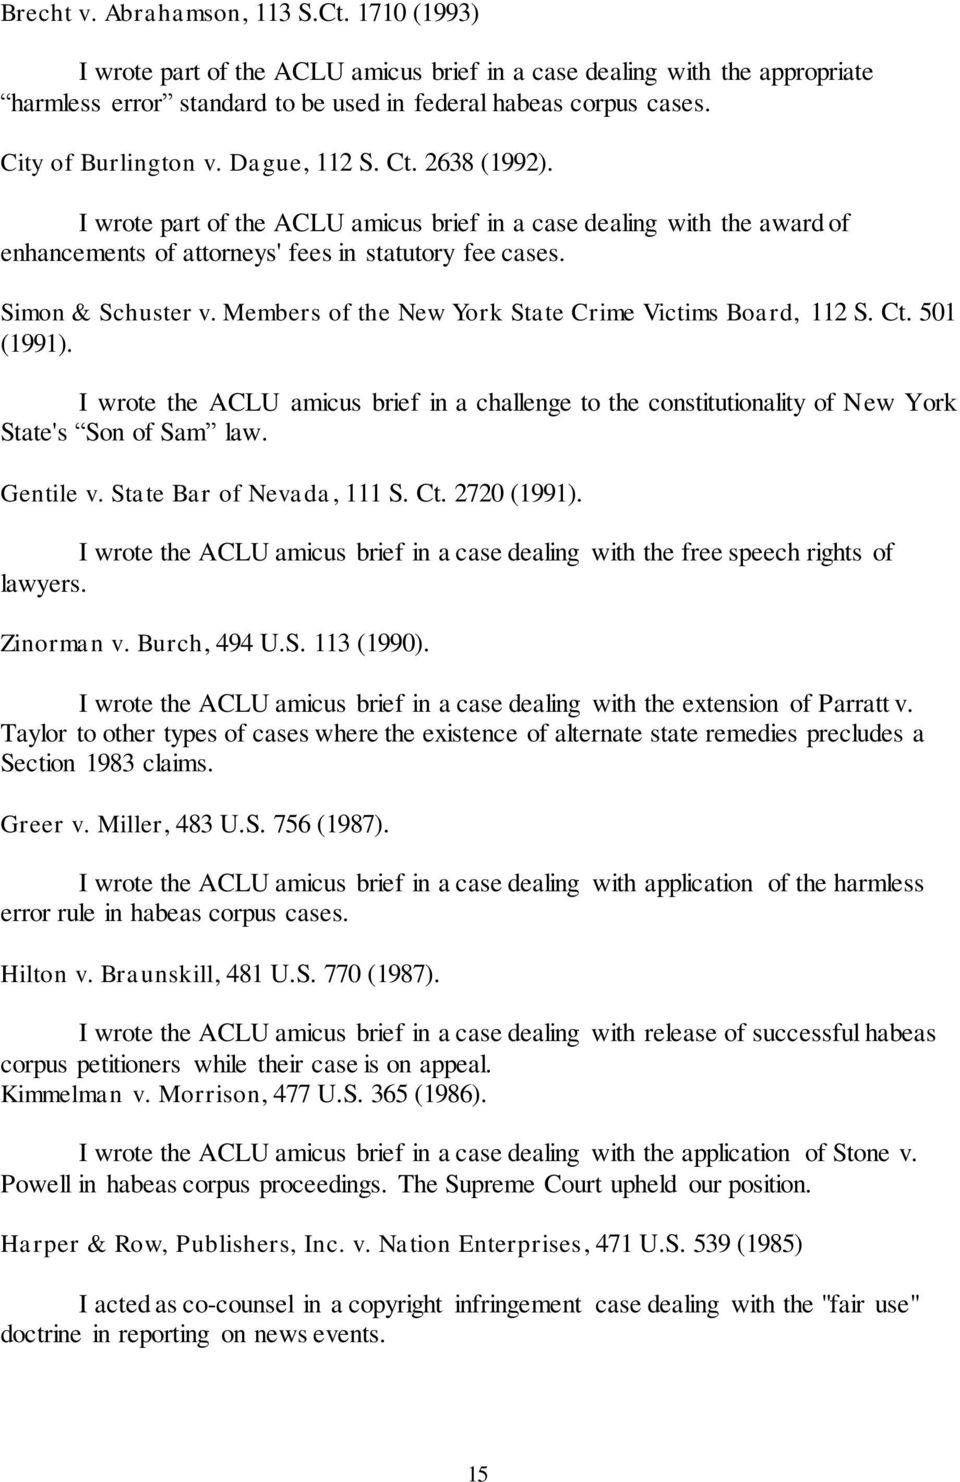 Simon & Schuster v. Members of the New York State Crime Victims Board, 112 S. Ct. 501 (1991). I wrote the ACLU amicus brief in a challenge to the constitutionality of New York State's Son of Sam law.